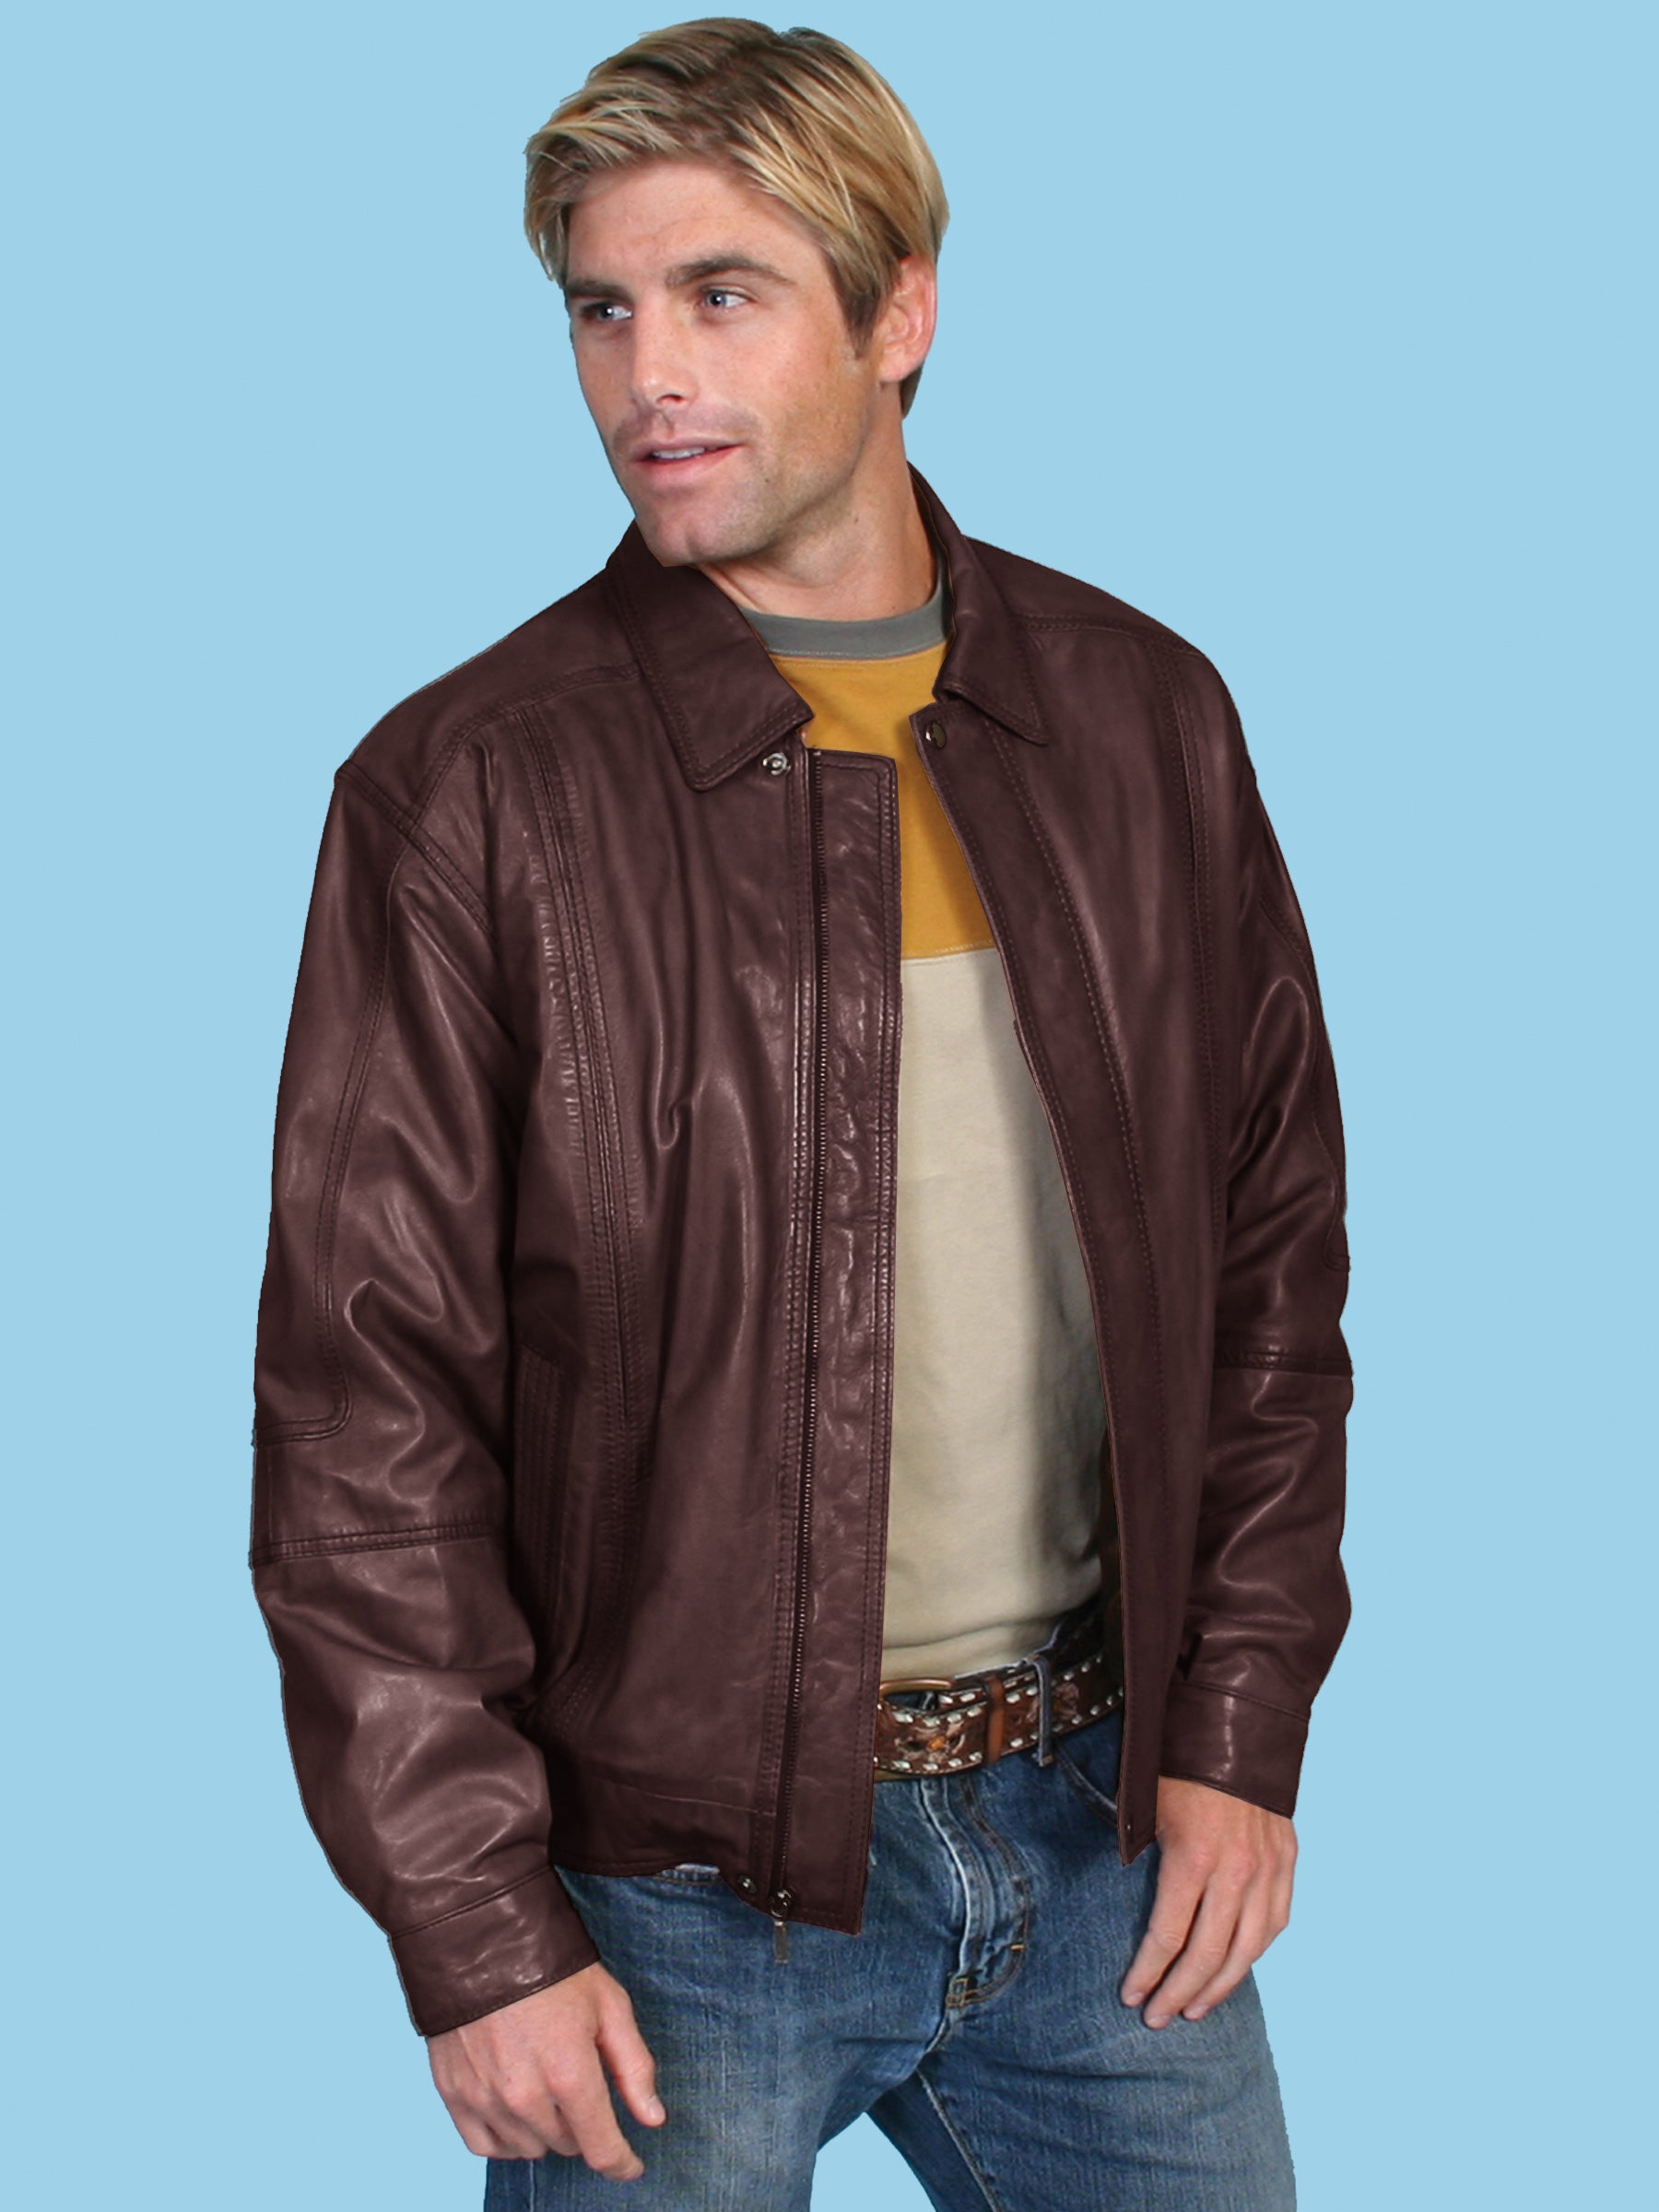 3acee2733 Scully Leather Mens Premium Lambskin Zip Front Jacket Chocolate